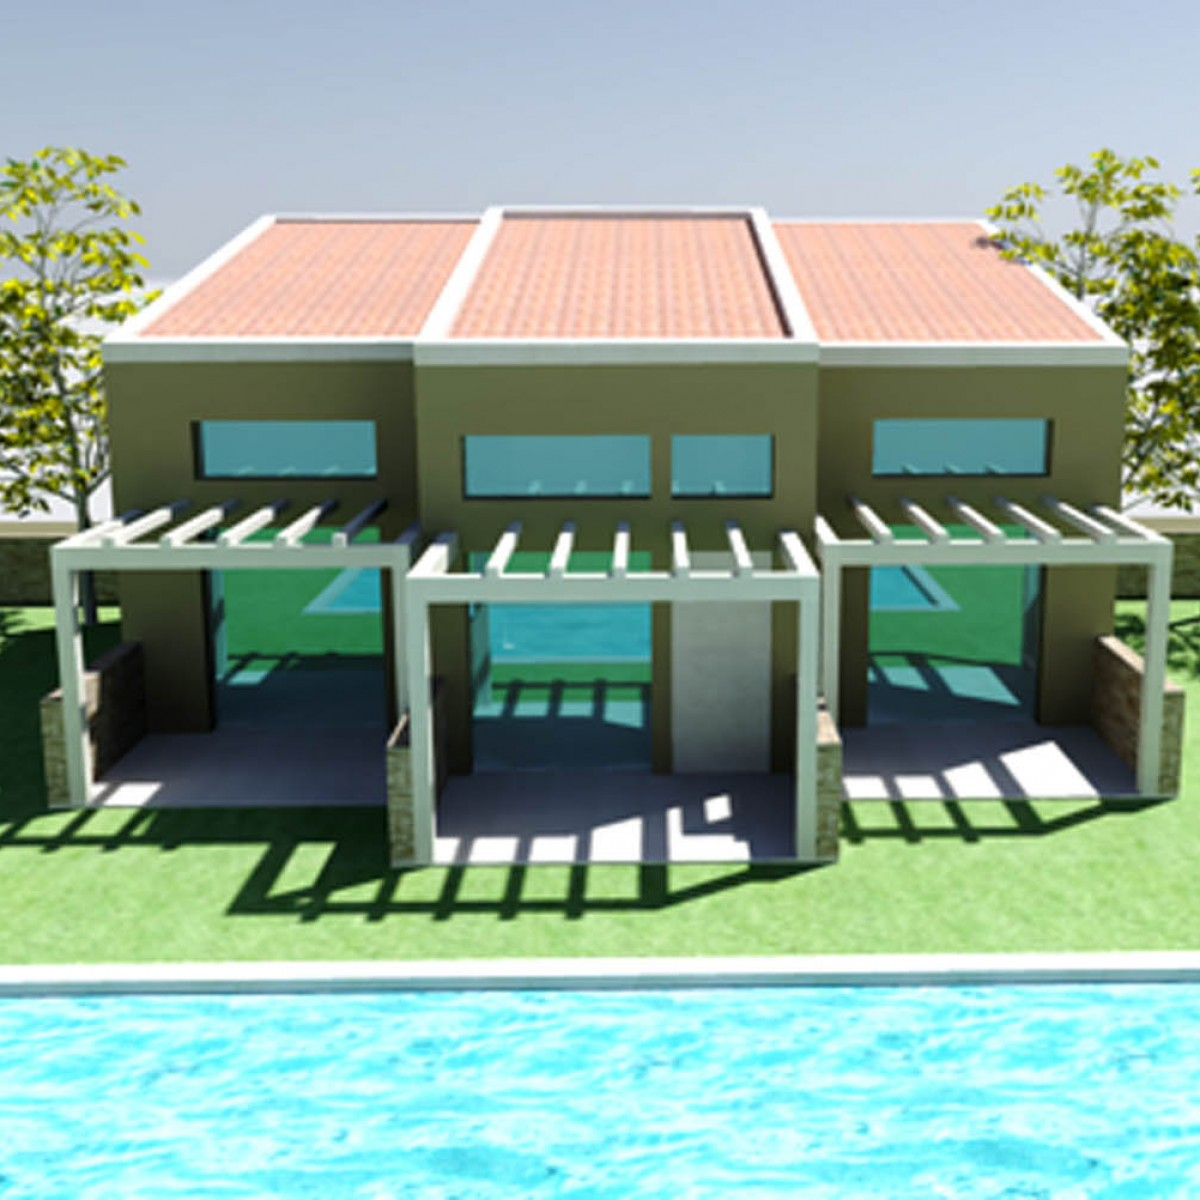 NEW GROUND FLOOR BUILDING WITH ATTIC (HOUSES) & SWIMMING POOL